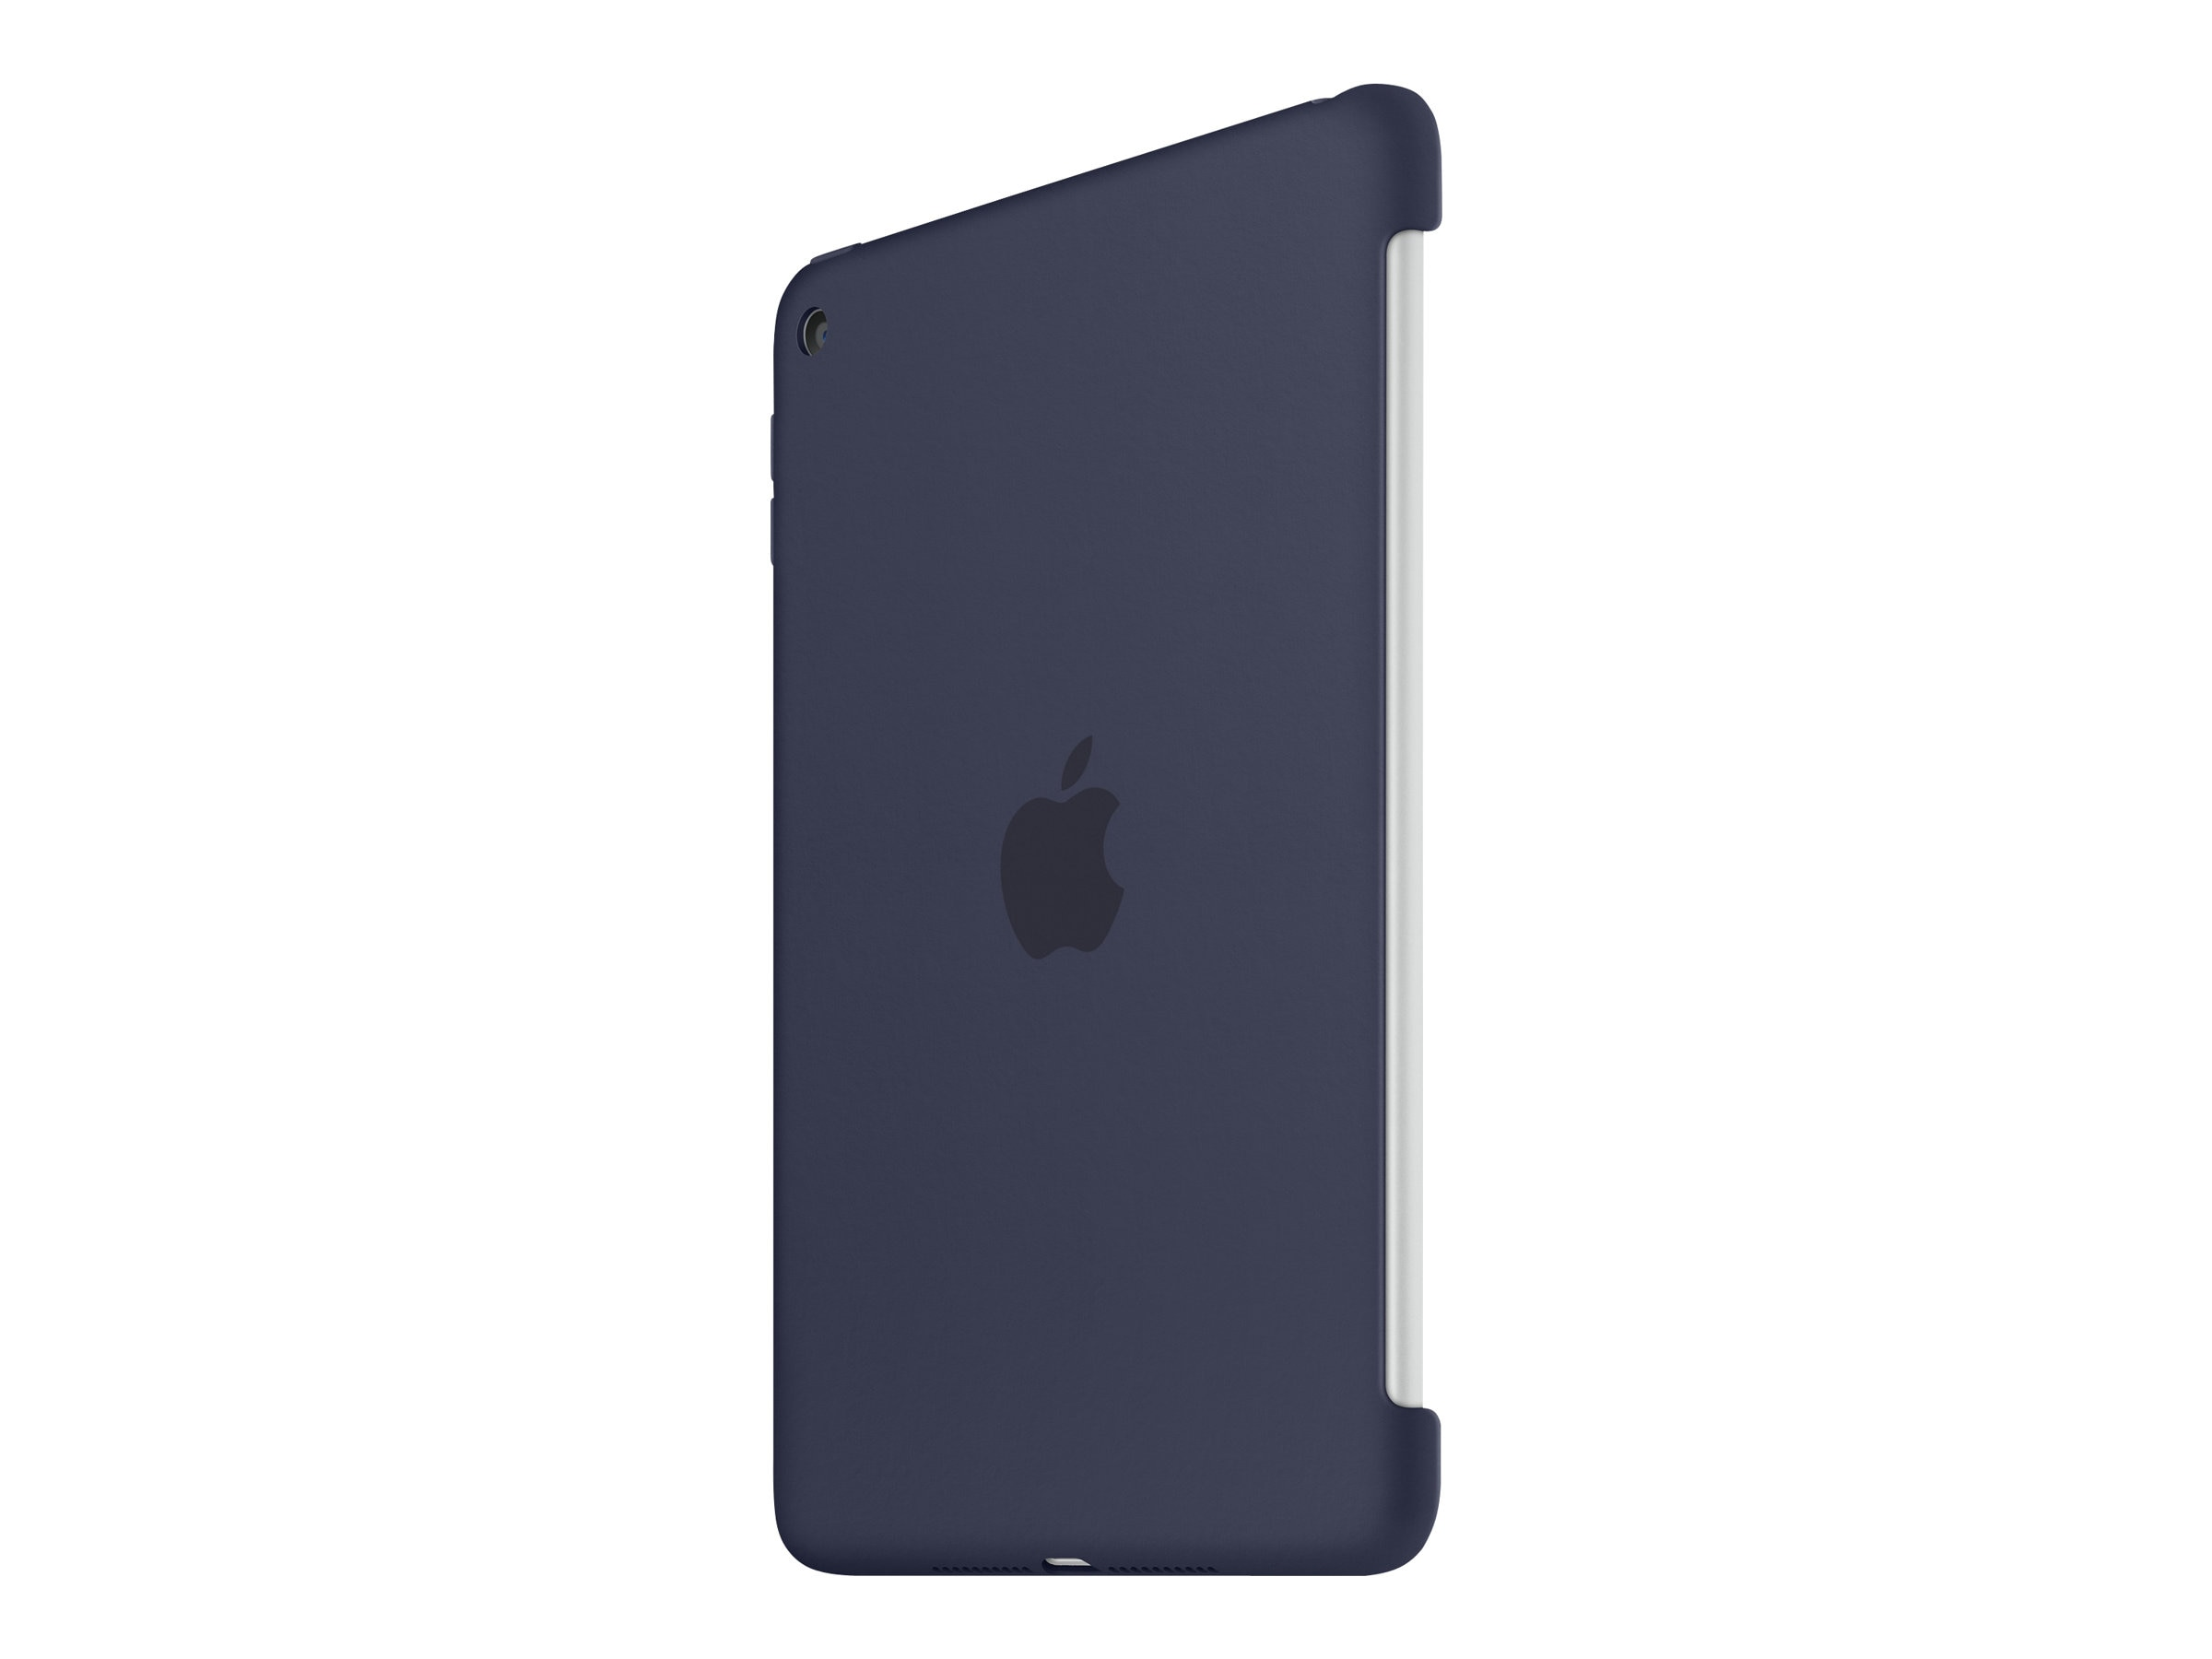 Apple Silicone Case for iPad mini 4, Midnight Blue, MKLM2ZM/A